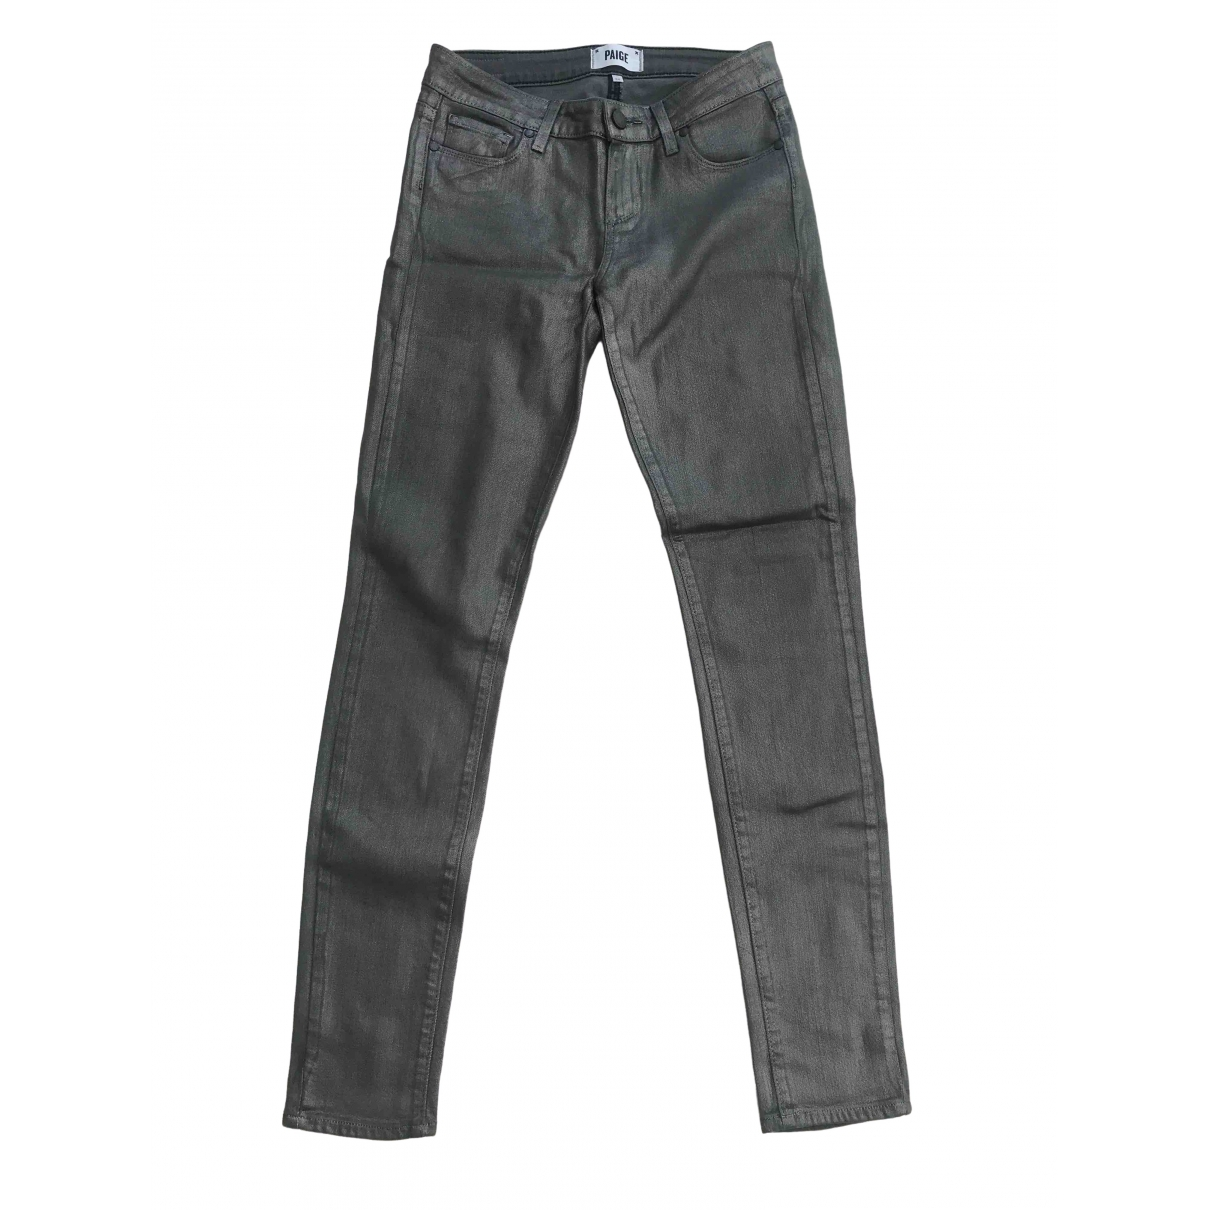 Paige Jeans \N Metallic Cotton - elasthane Jeans for Women 26 US